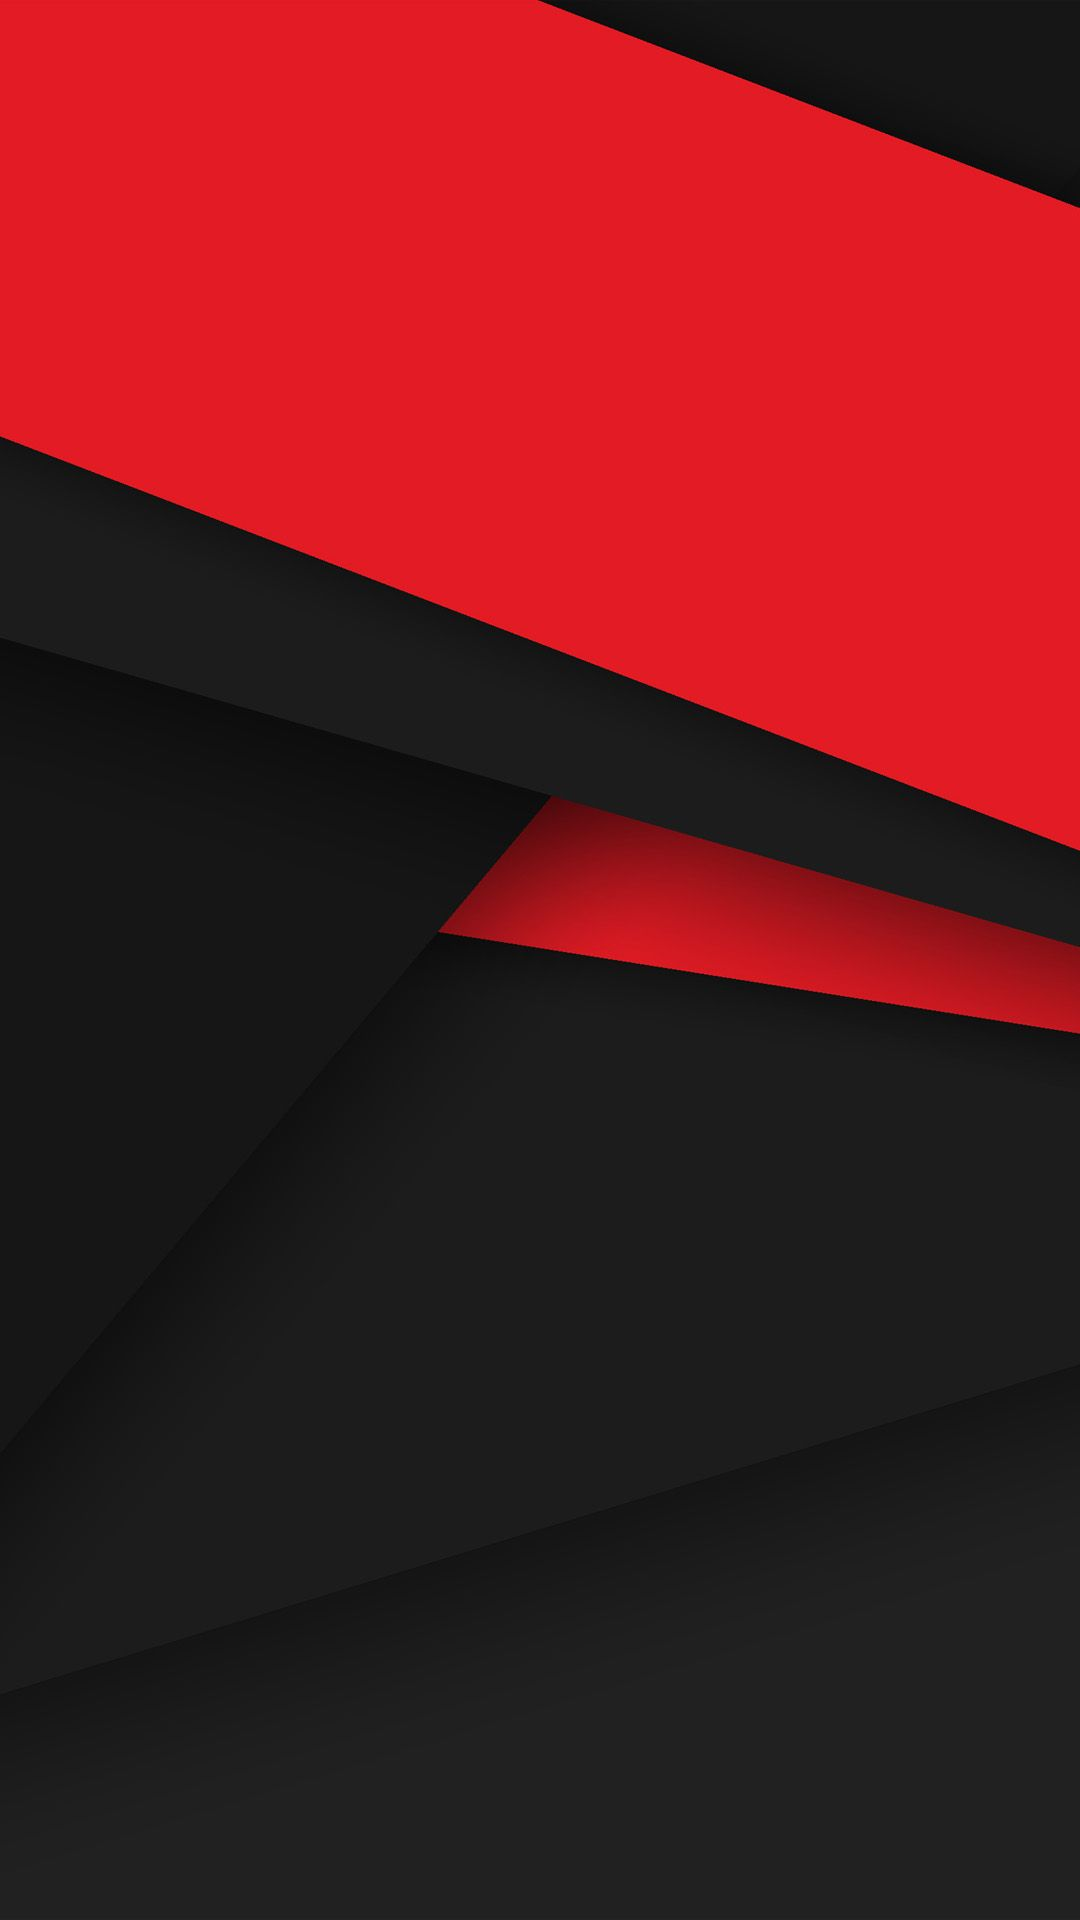 red and black iphone wallpapers top